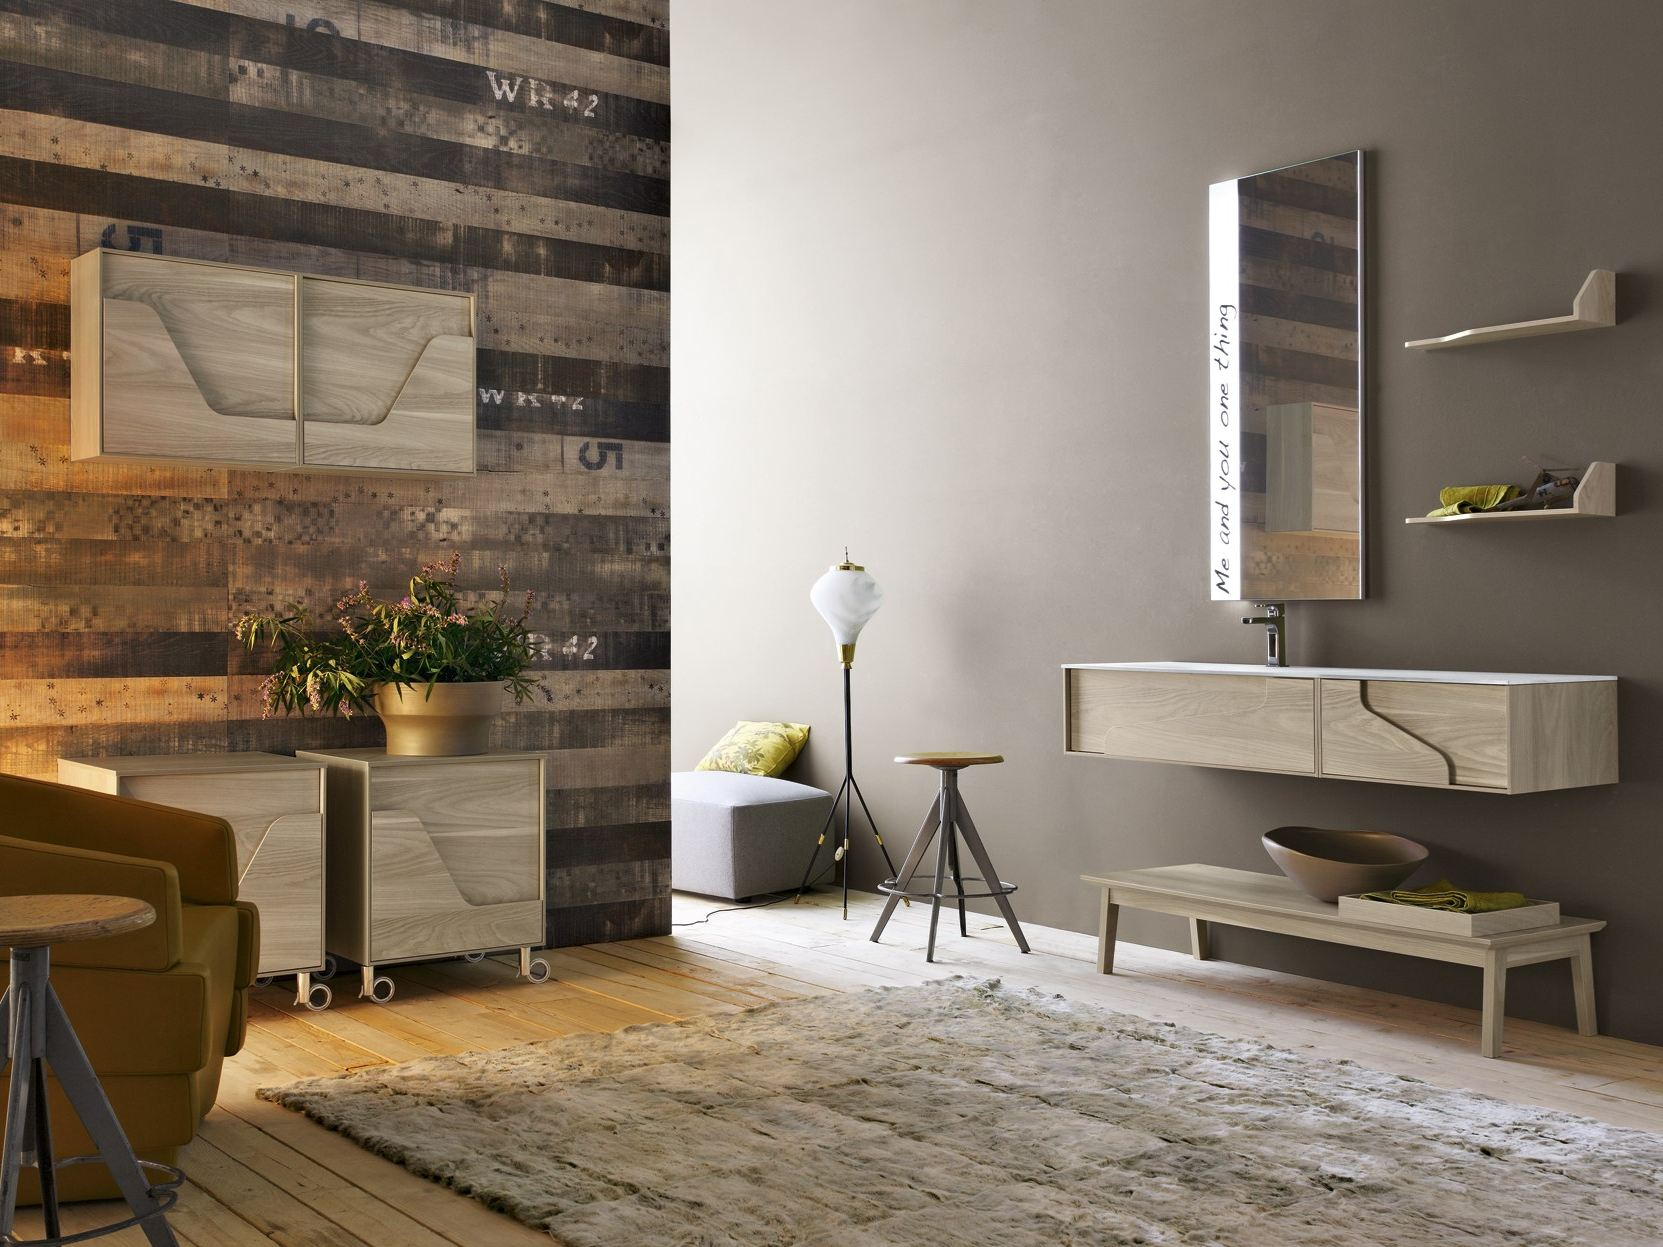 salle de bains compl te free 86 87 by cerasa design stefano spessotto lorella agnoletto. Black Bedroom Furniture Sets. Home Design Ideas